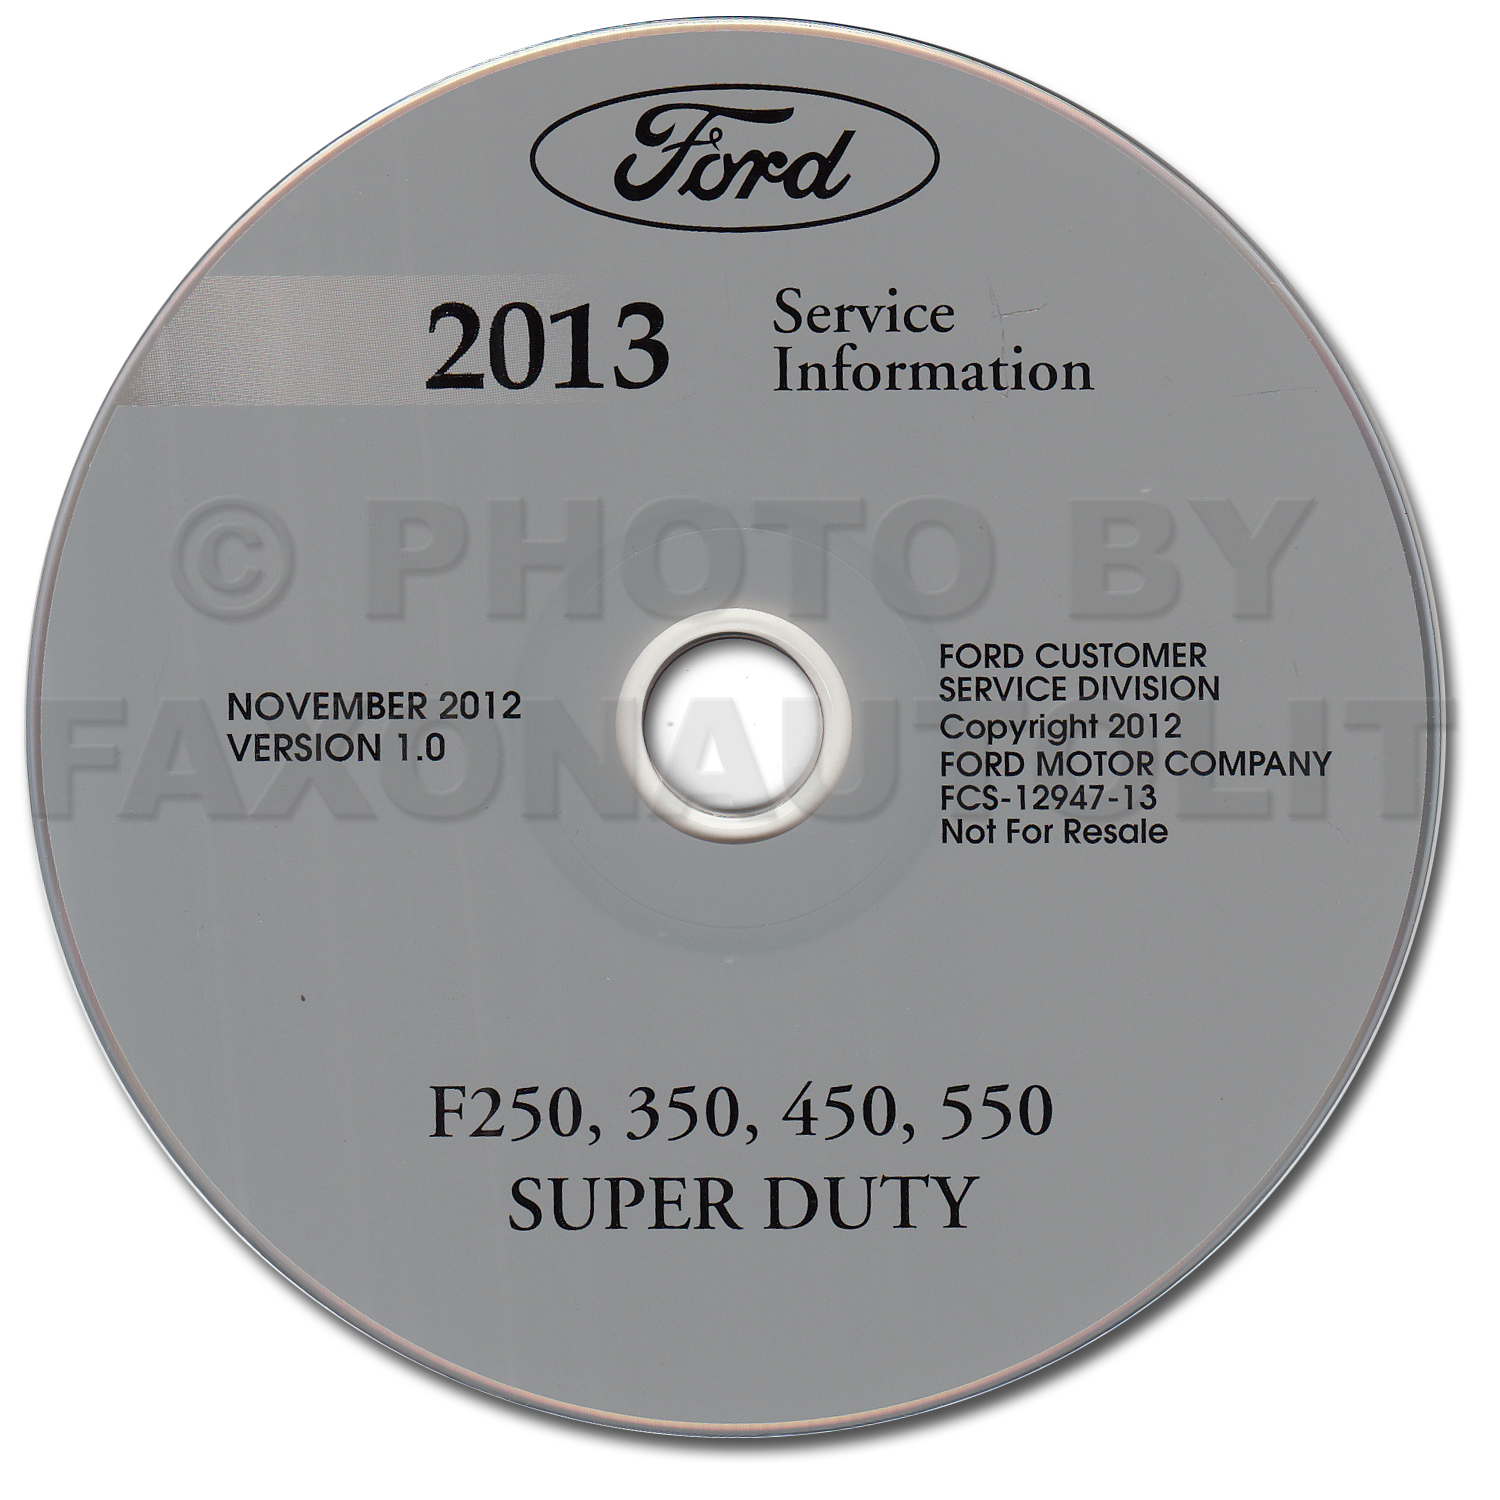 2013 Ford F250 F350 F450 F550 Super Duty Truck Repair Shop